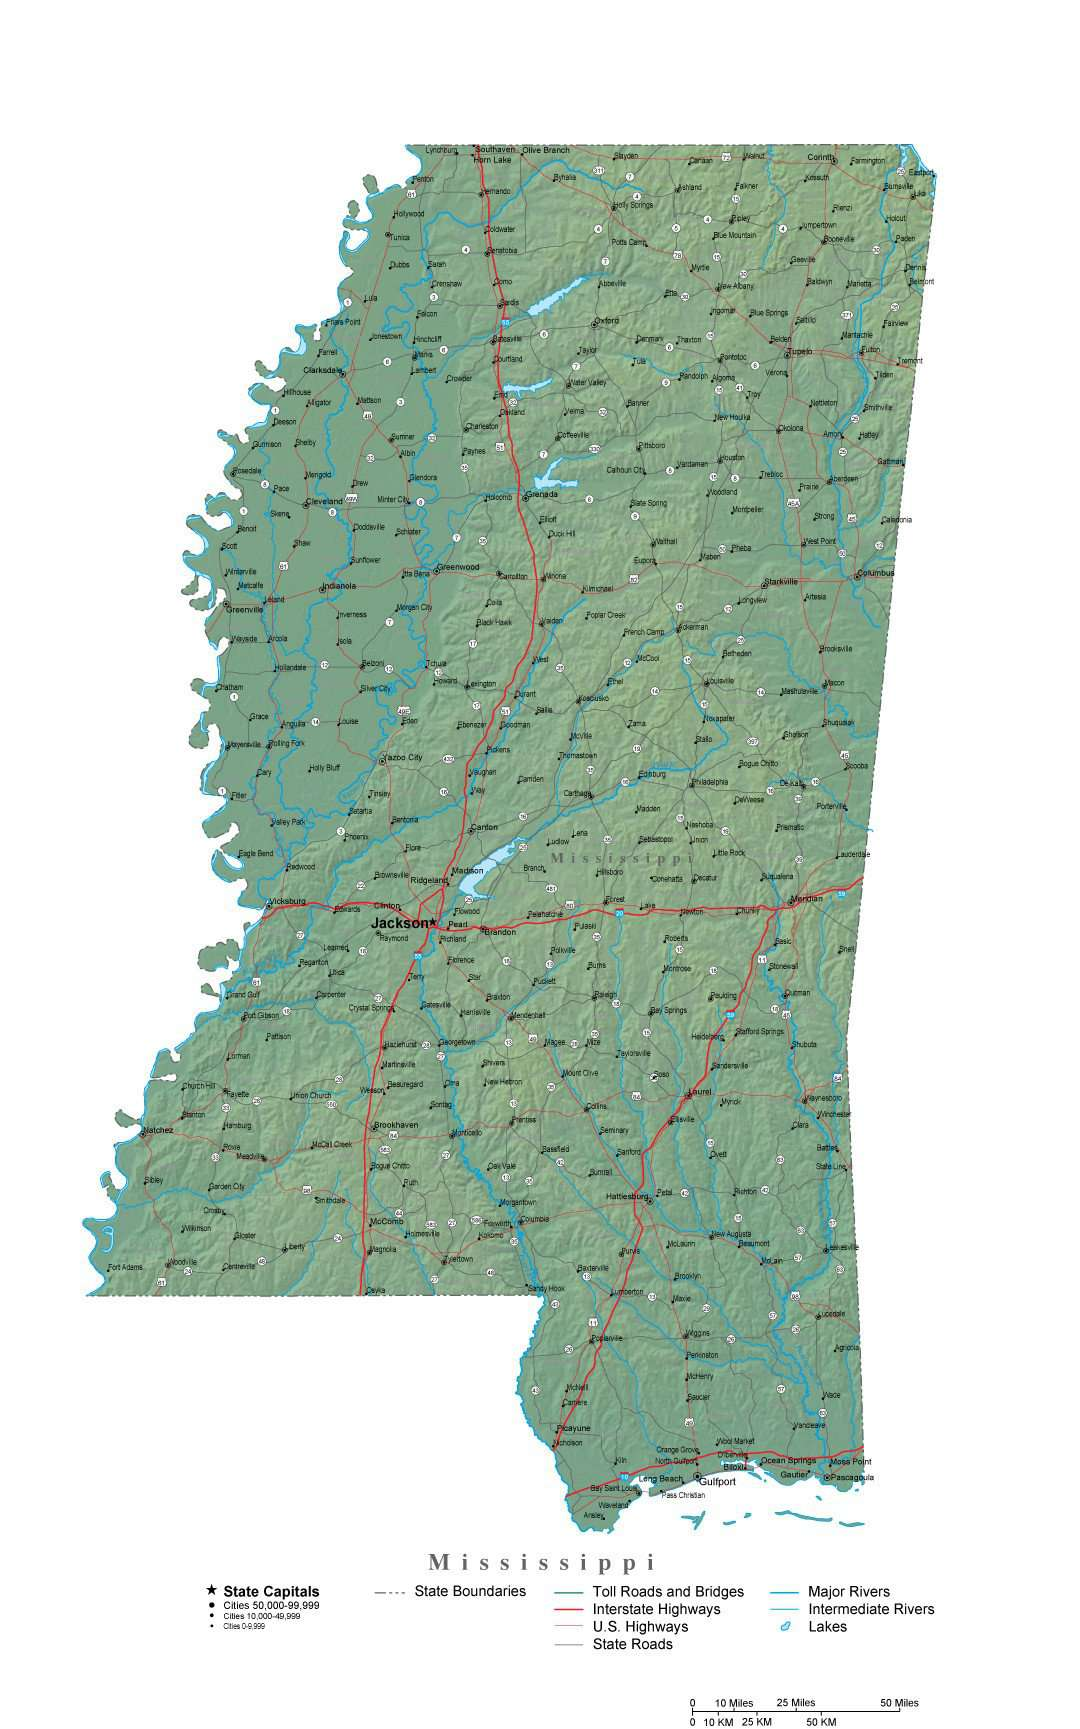 Mississippi Map - Cut-Out Style with Cities, Roads, Water Features on louisiana's map, maryland's map, kentucky's map, maine's map, oklahoma's map, mississippi regions map, ms road map, georgia's map, michigan's map, indiana's map, missouri's map, new mexico's map, mississippi county map, mississippi state map, new jersey's map,